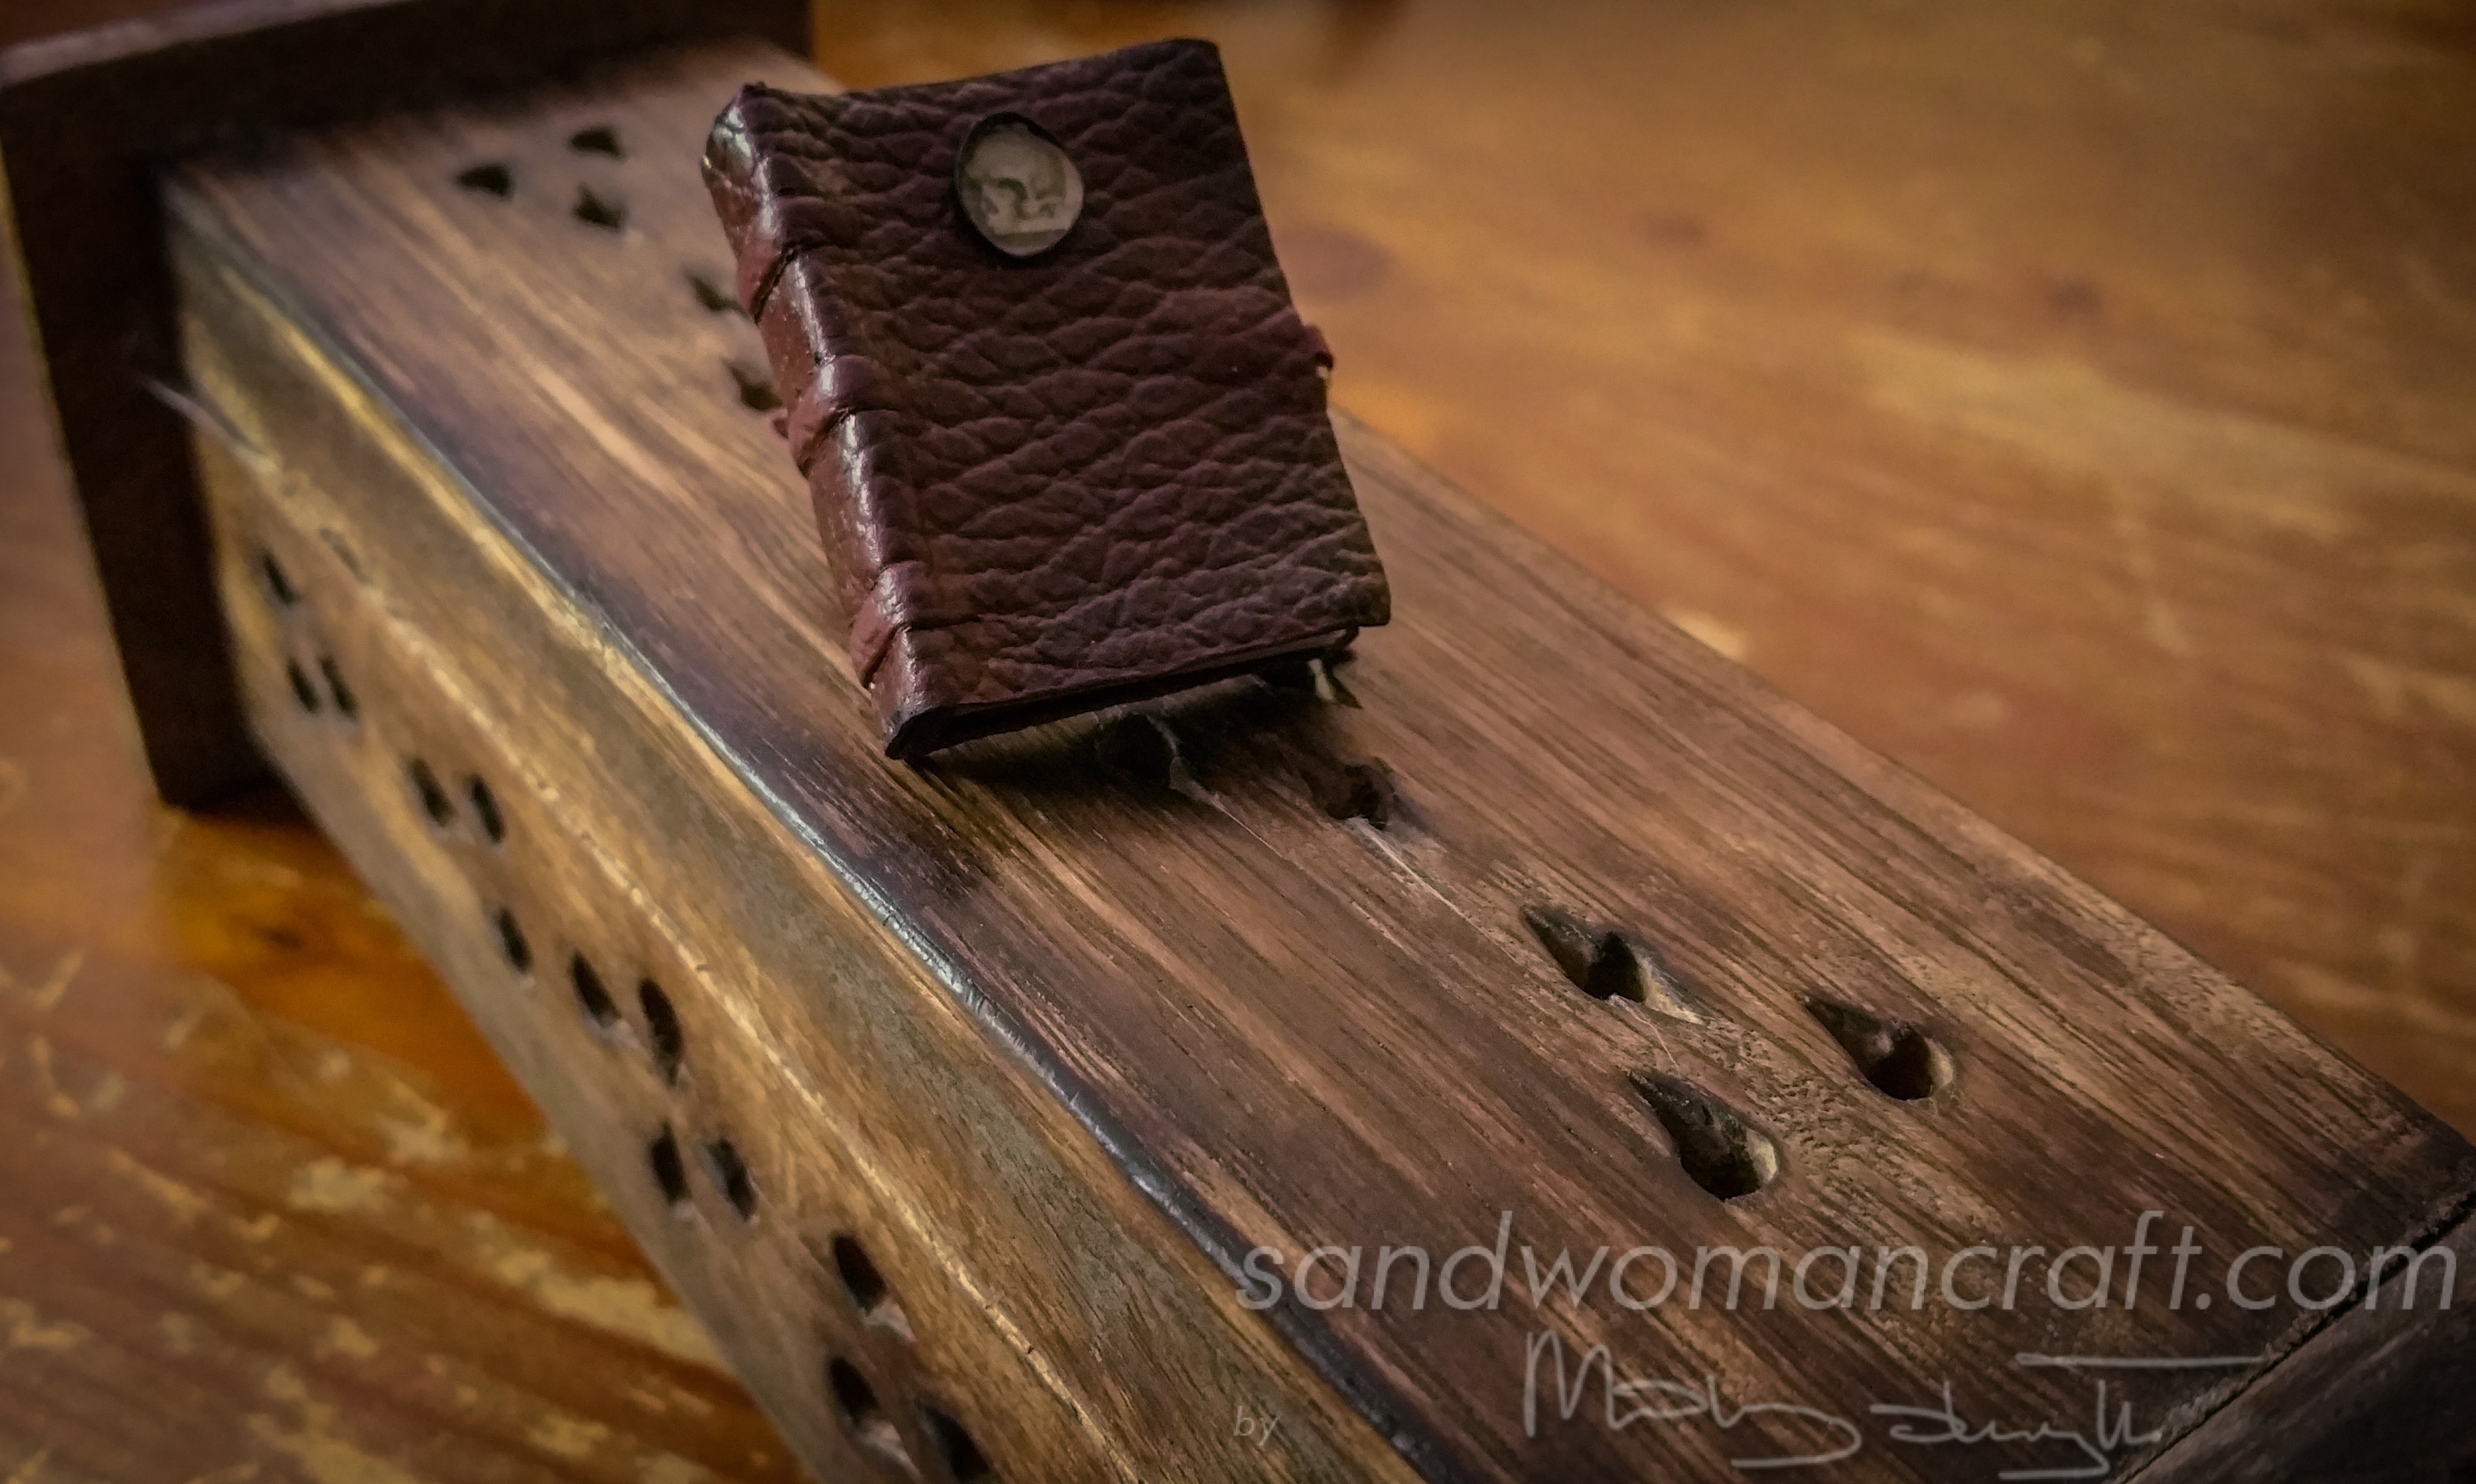 Legible miniature book- medieval style